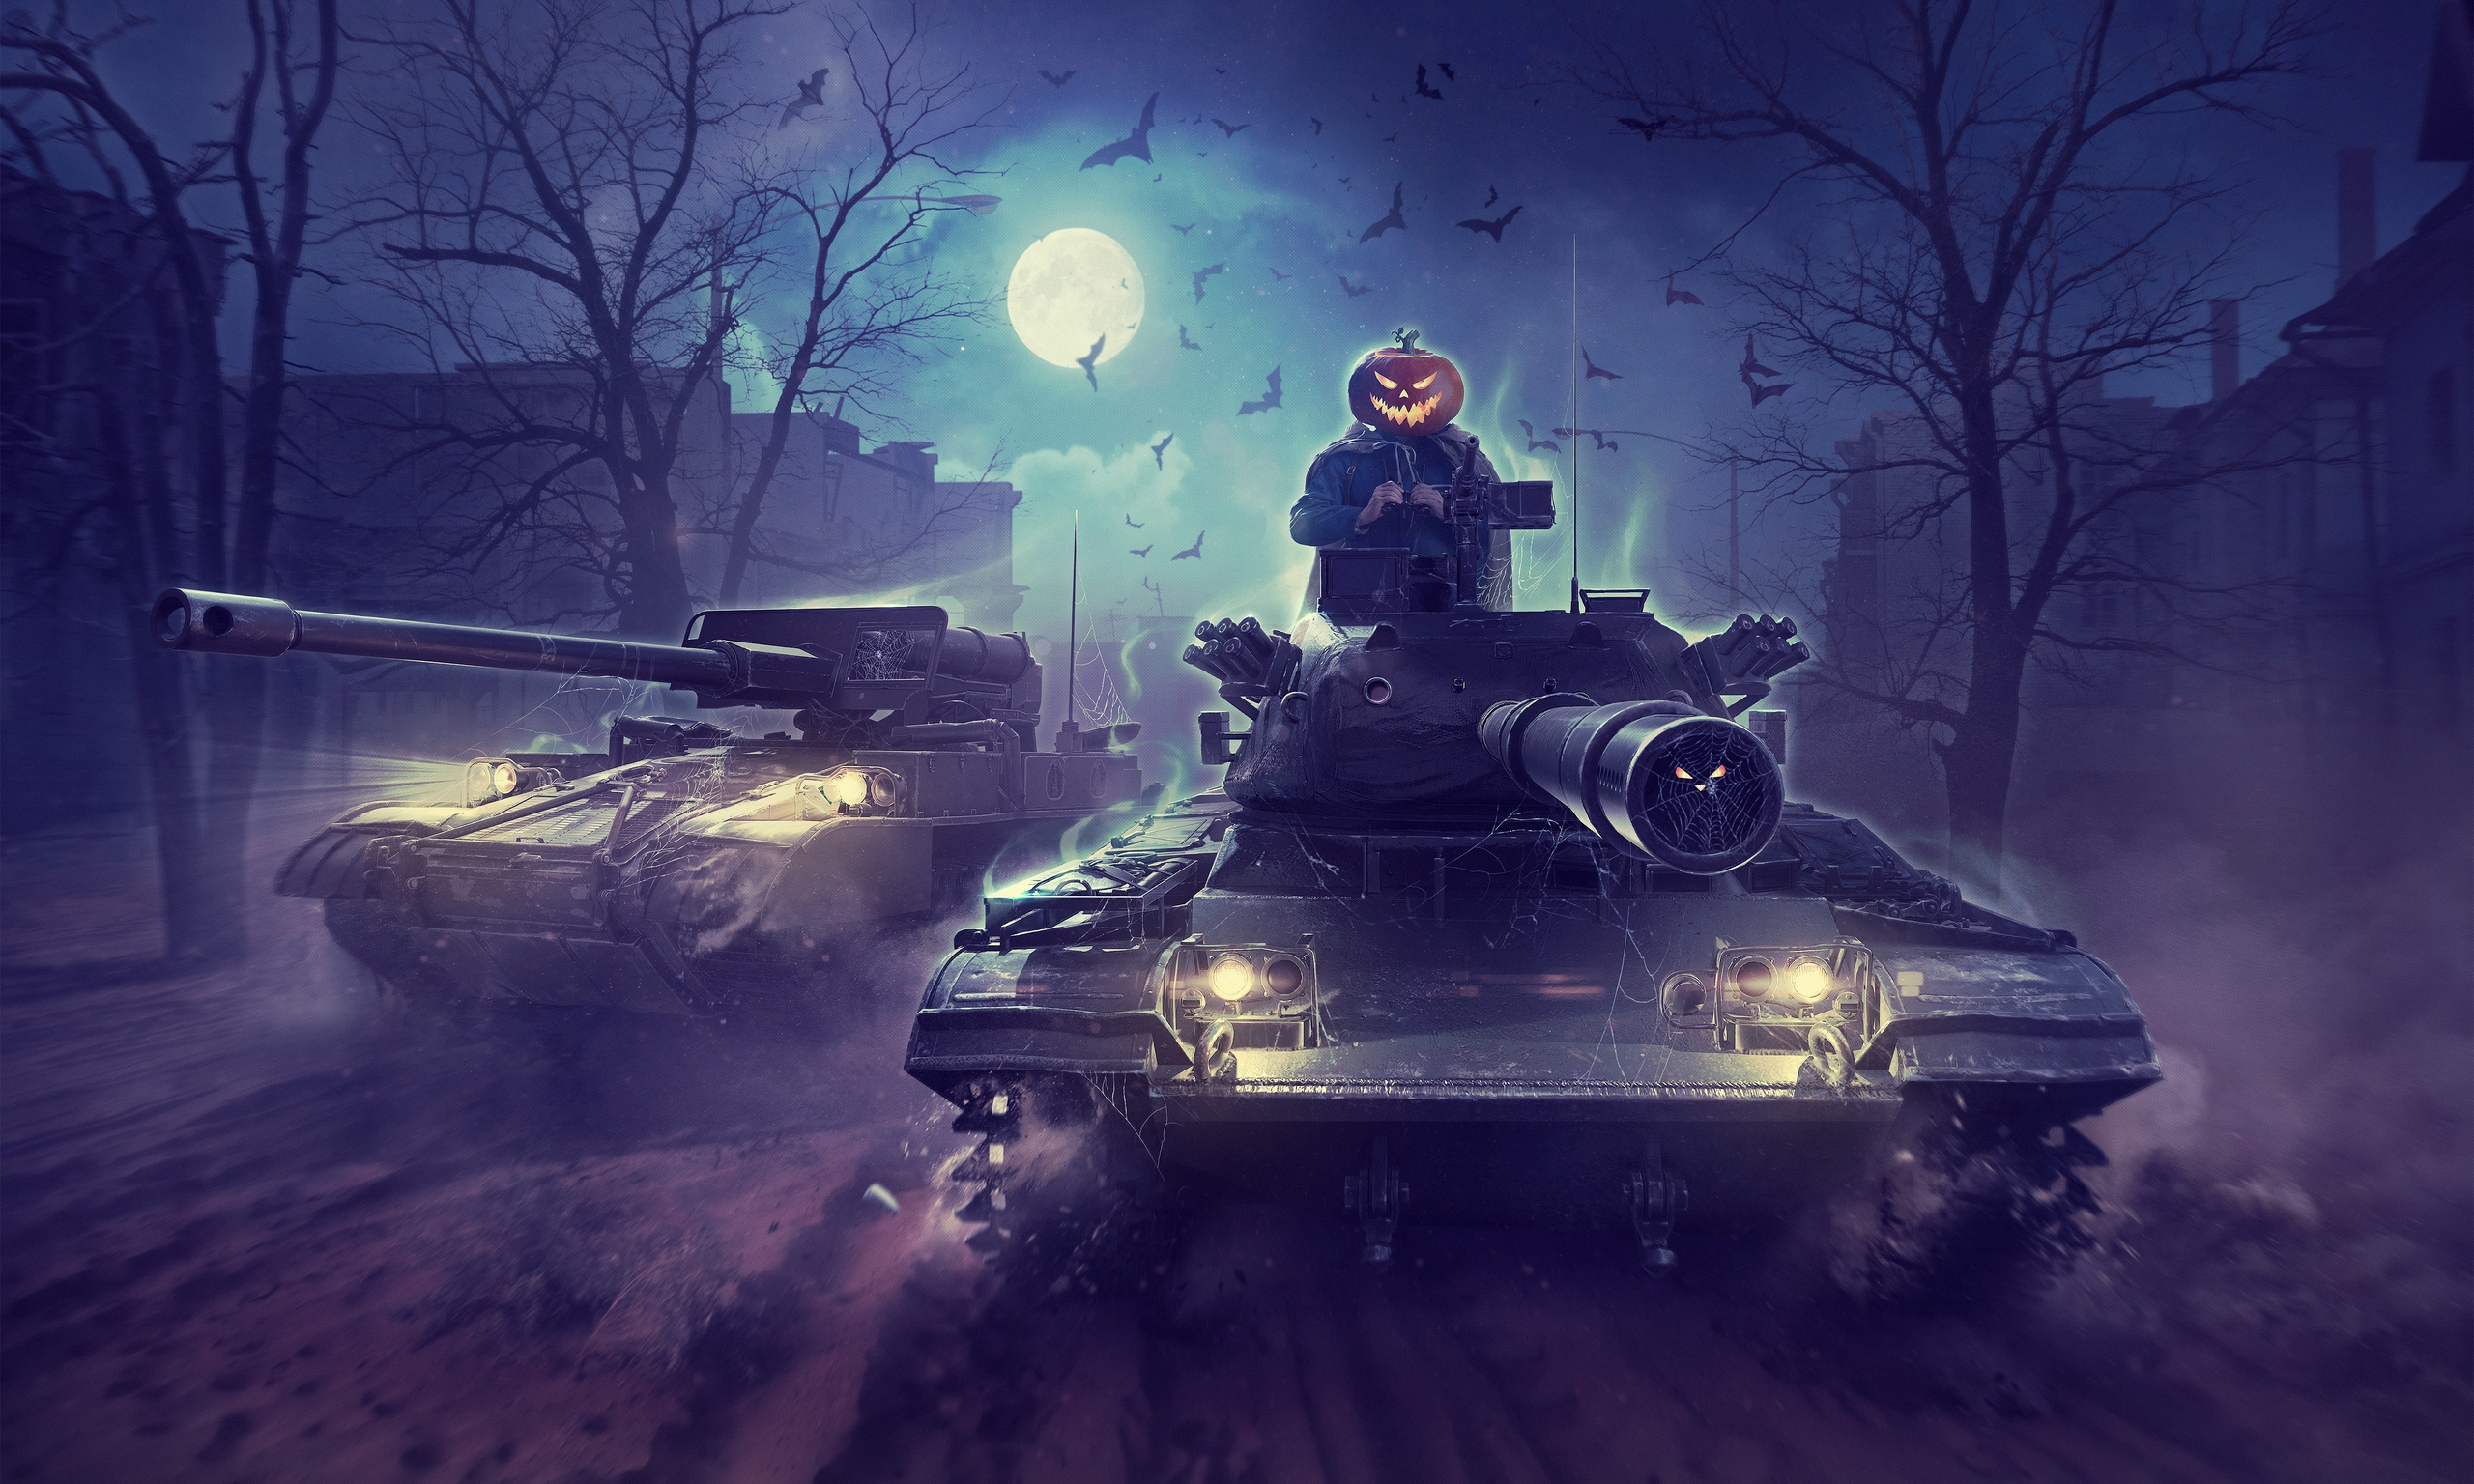 Как получить Twitch Prime Джульетт для World of Tanks за 5 минут  [10 пакет]